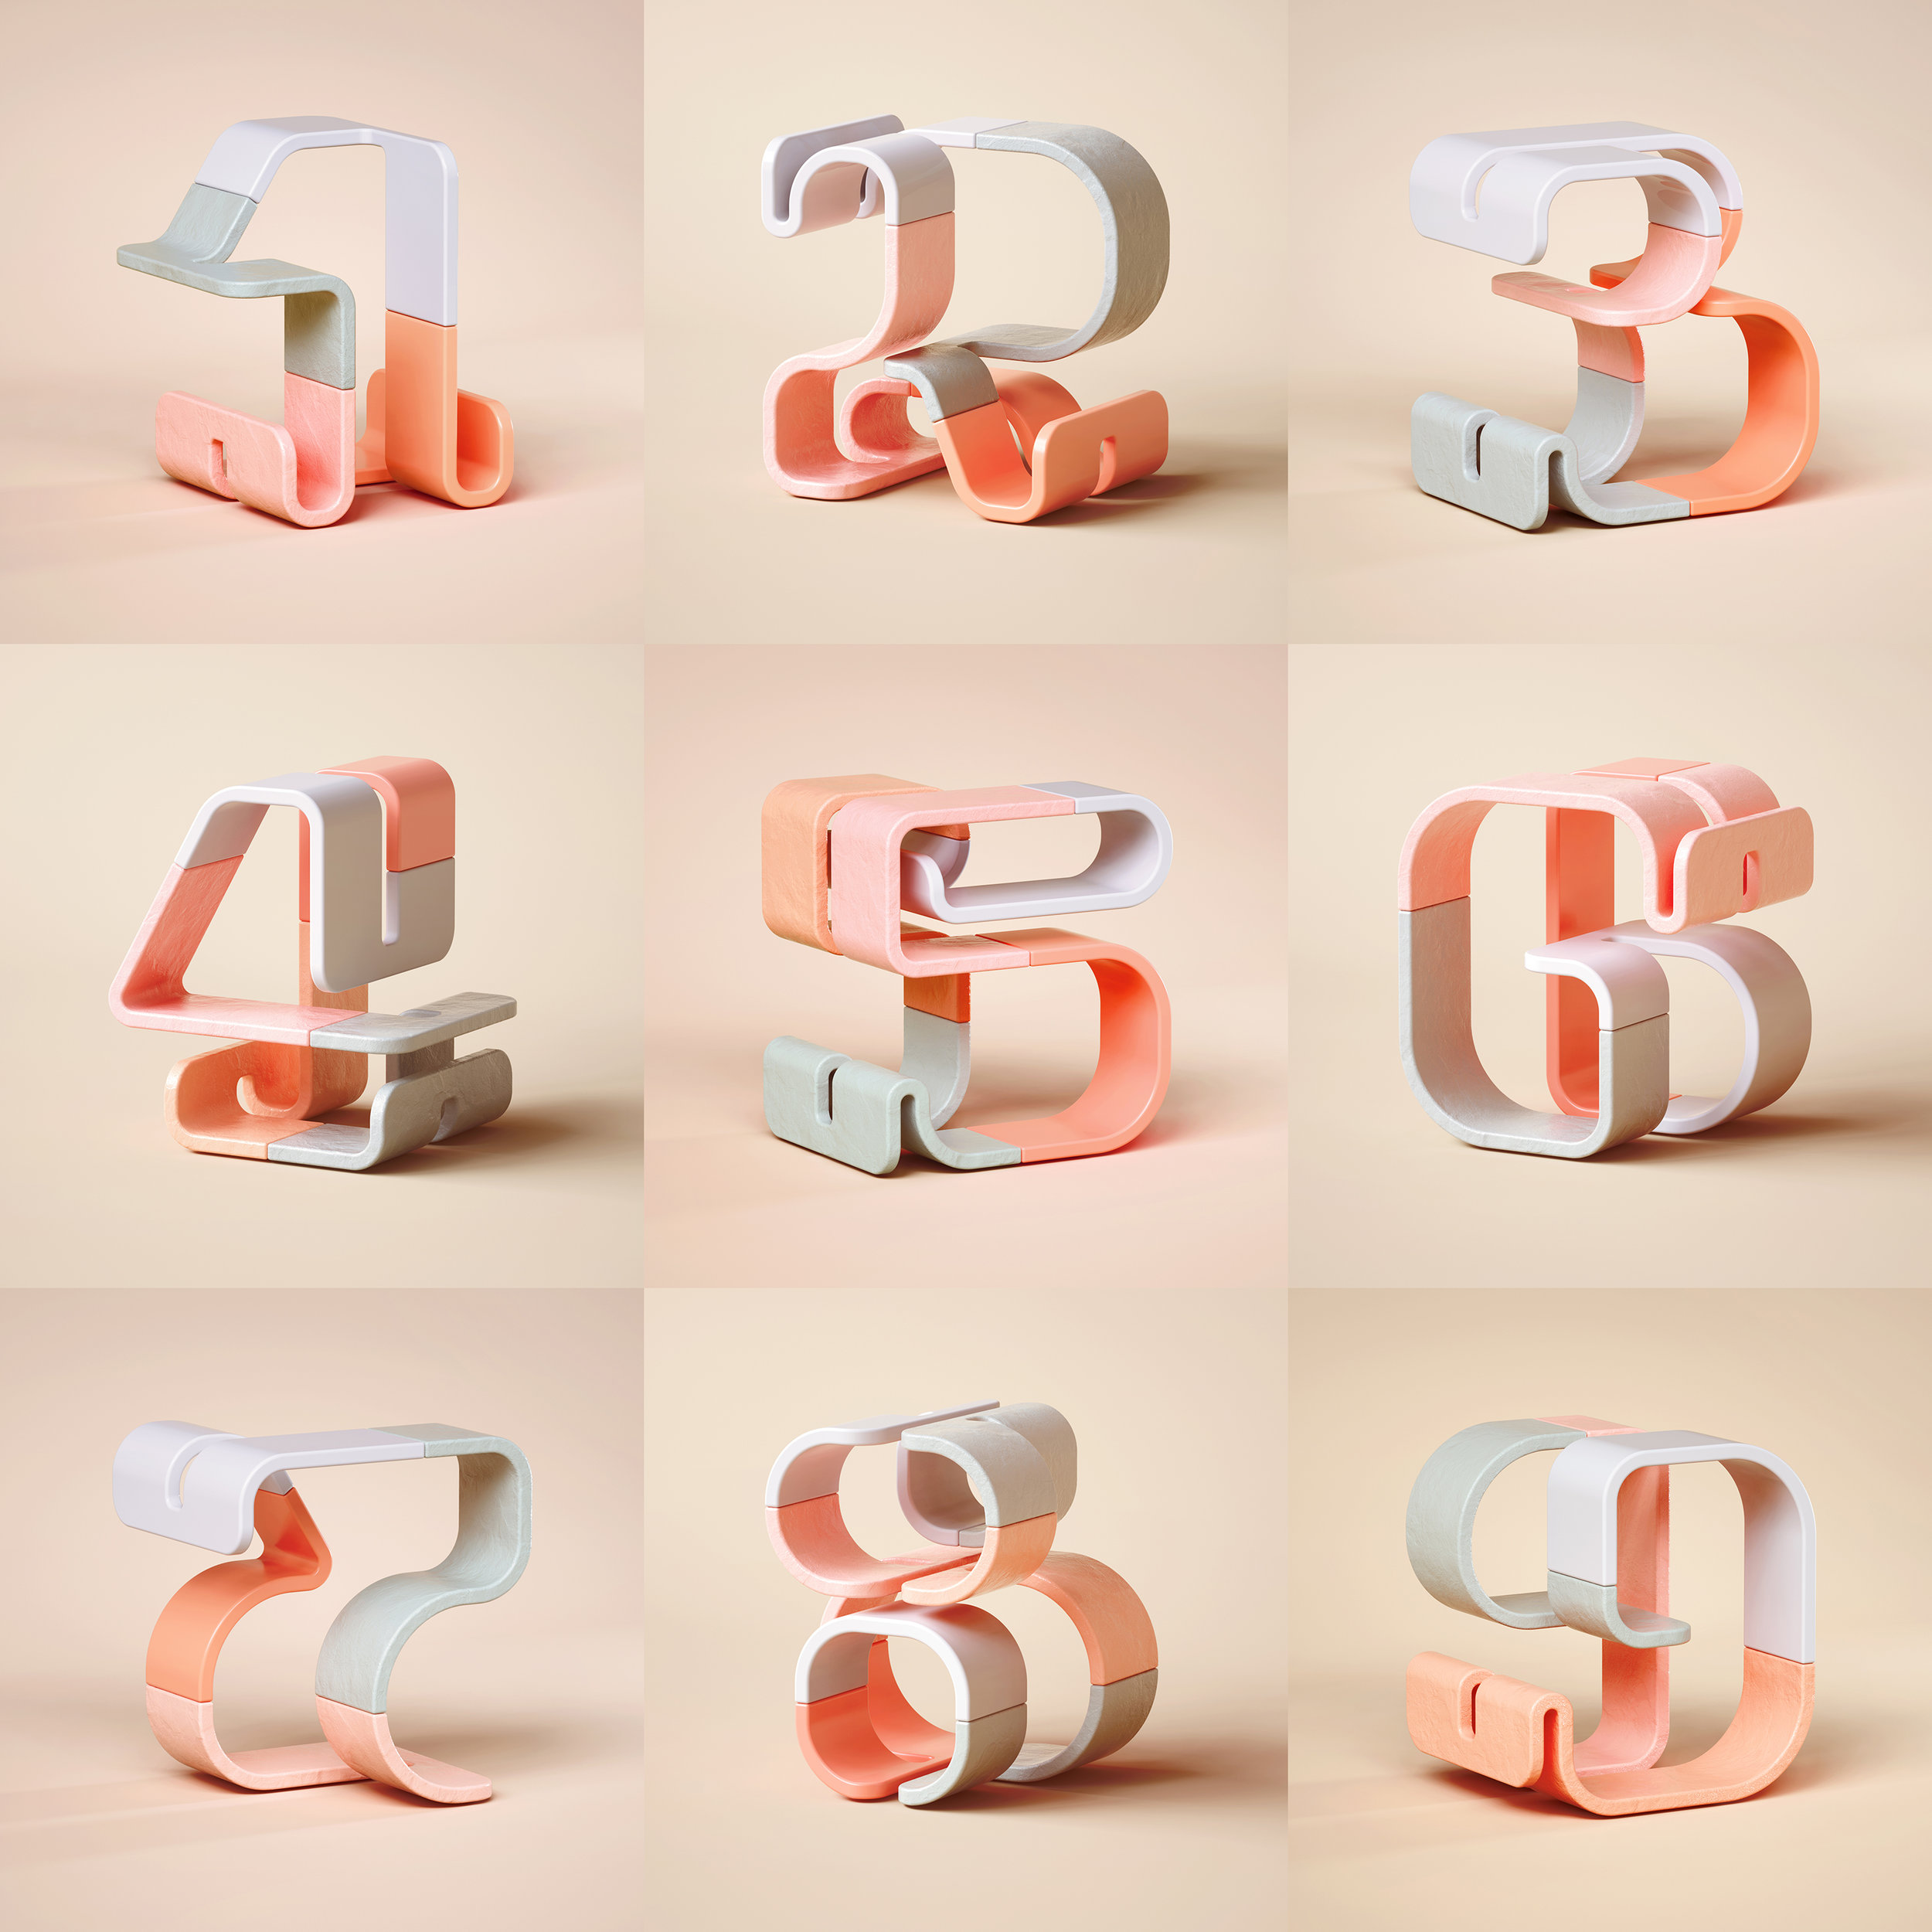 36 Days of Type 2019 - 3D Typeform number 1 to 9 visuals.